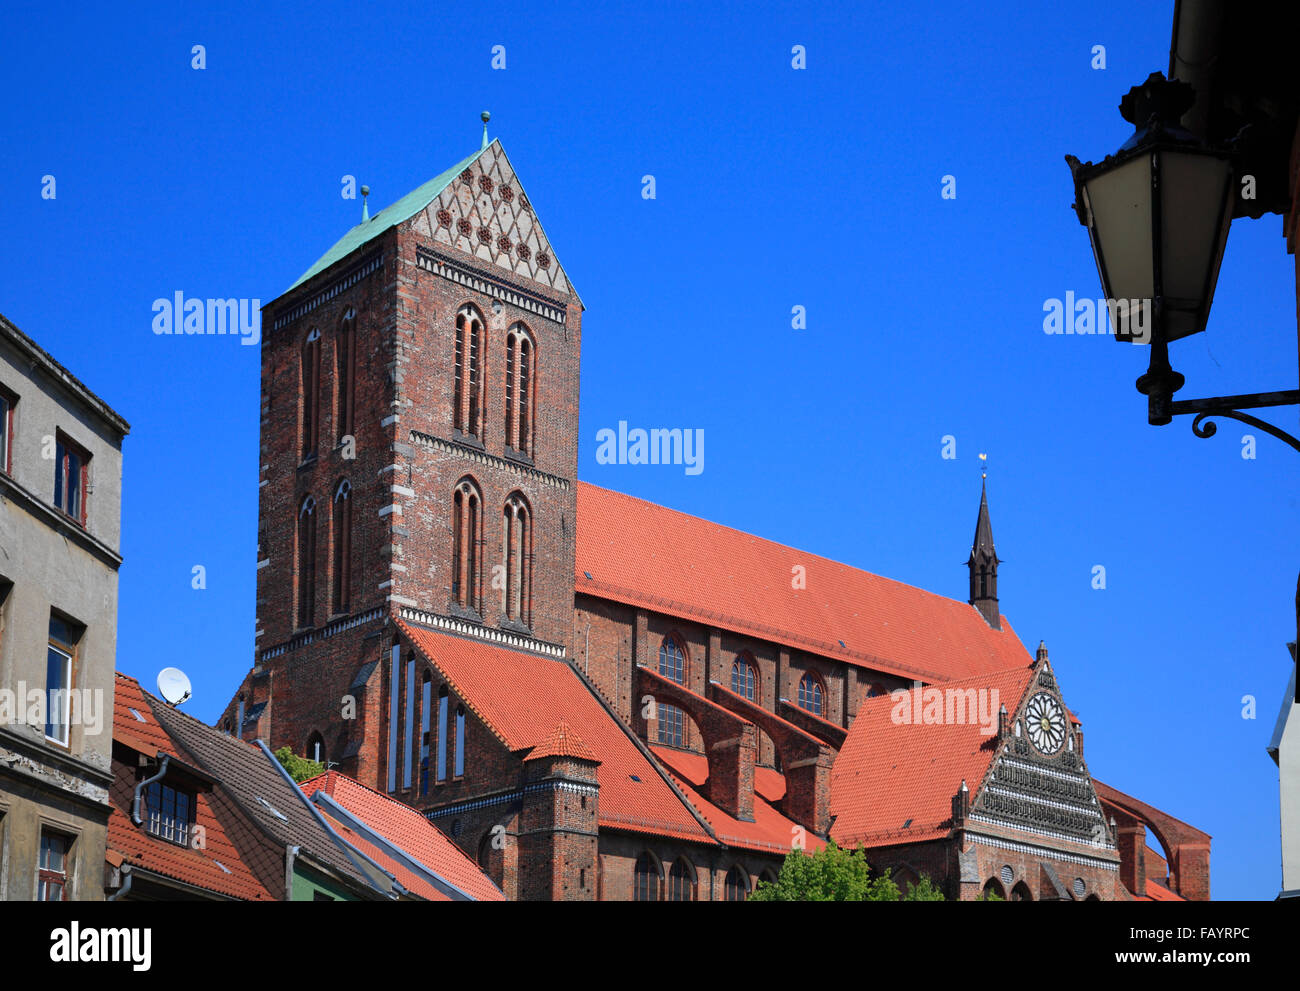 Nikolaikirche, St Nicolas Church, Wismar, Baltic Sea, Mecklenburg Western Pomerania, Germany, Europe - Stock Image